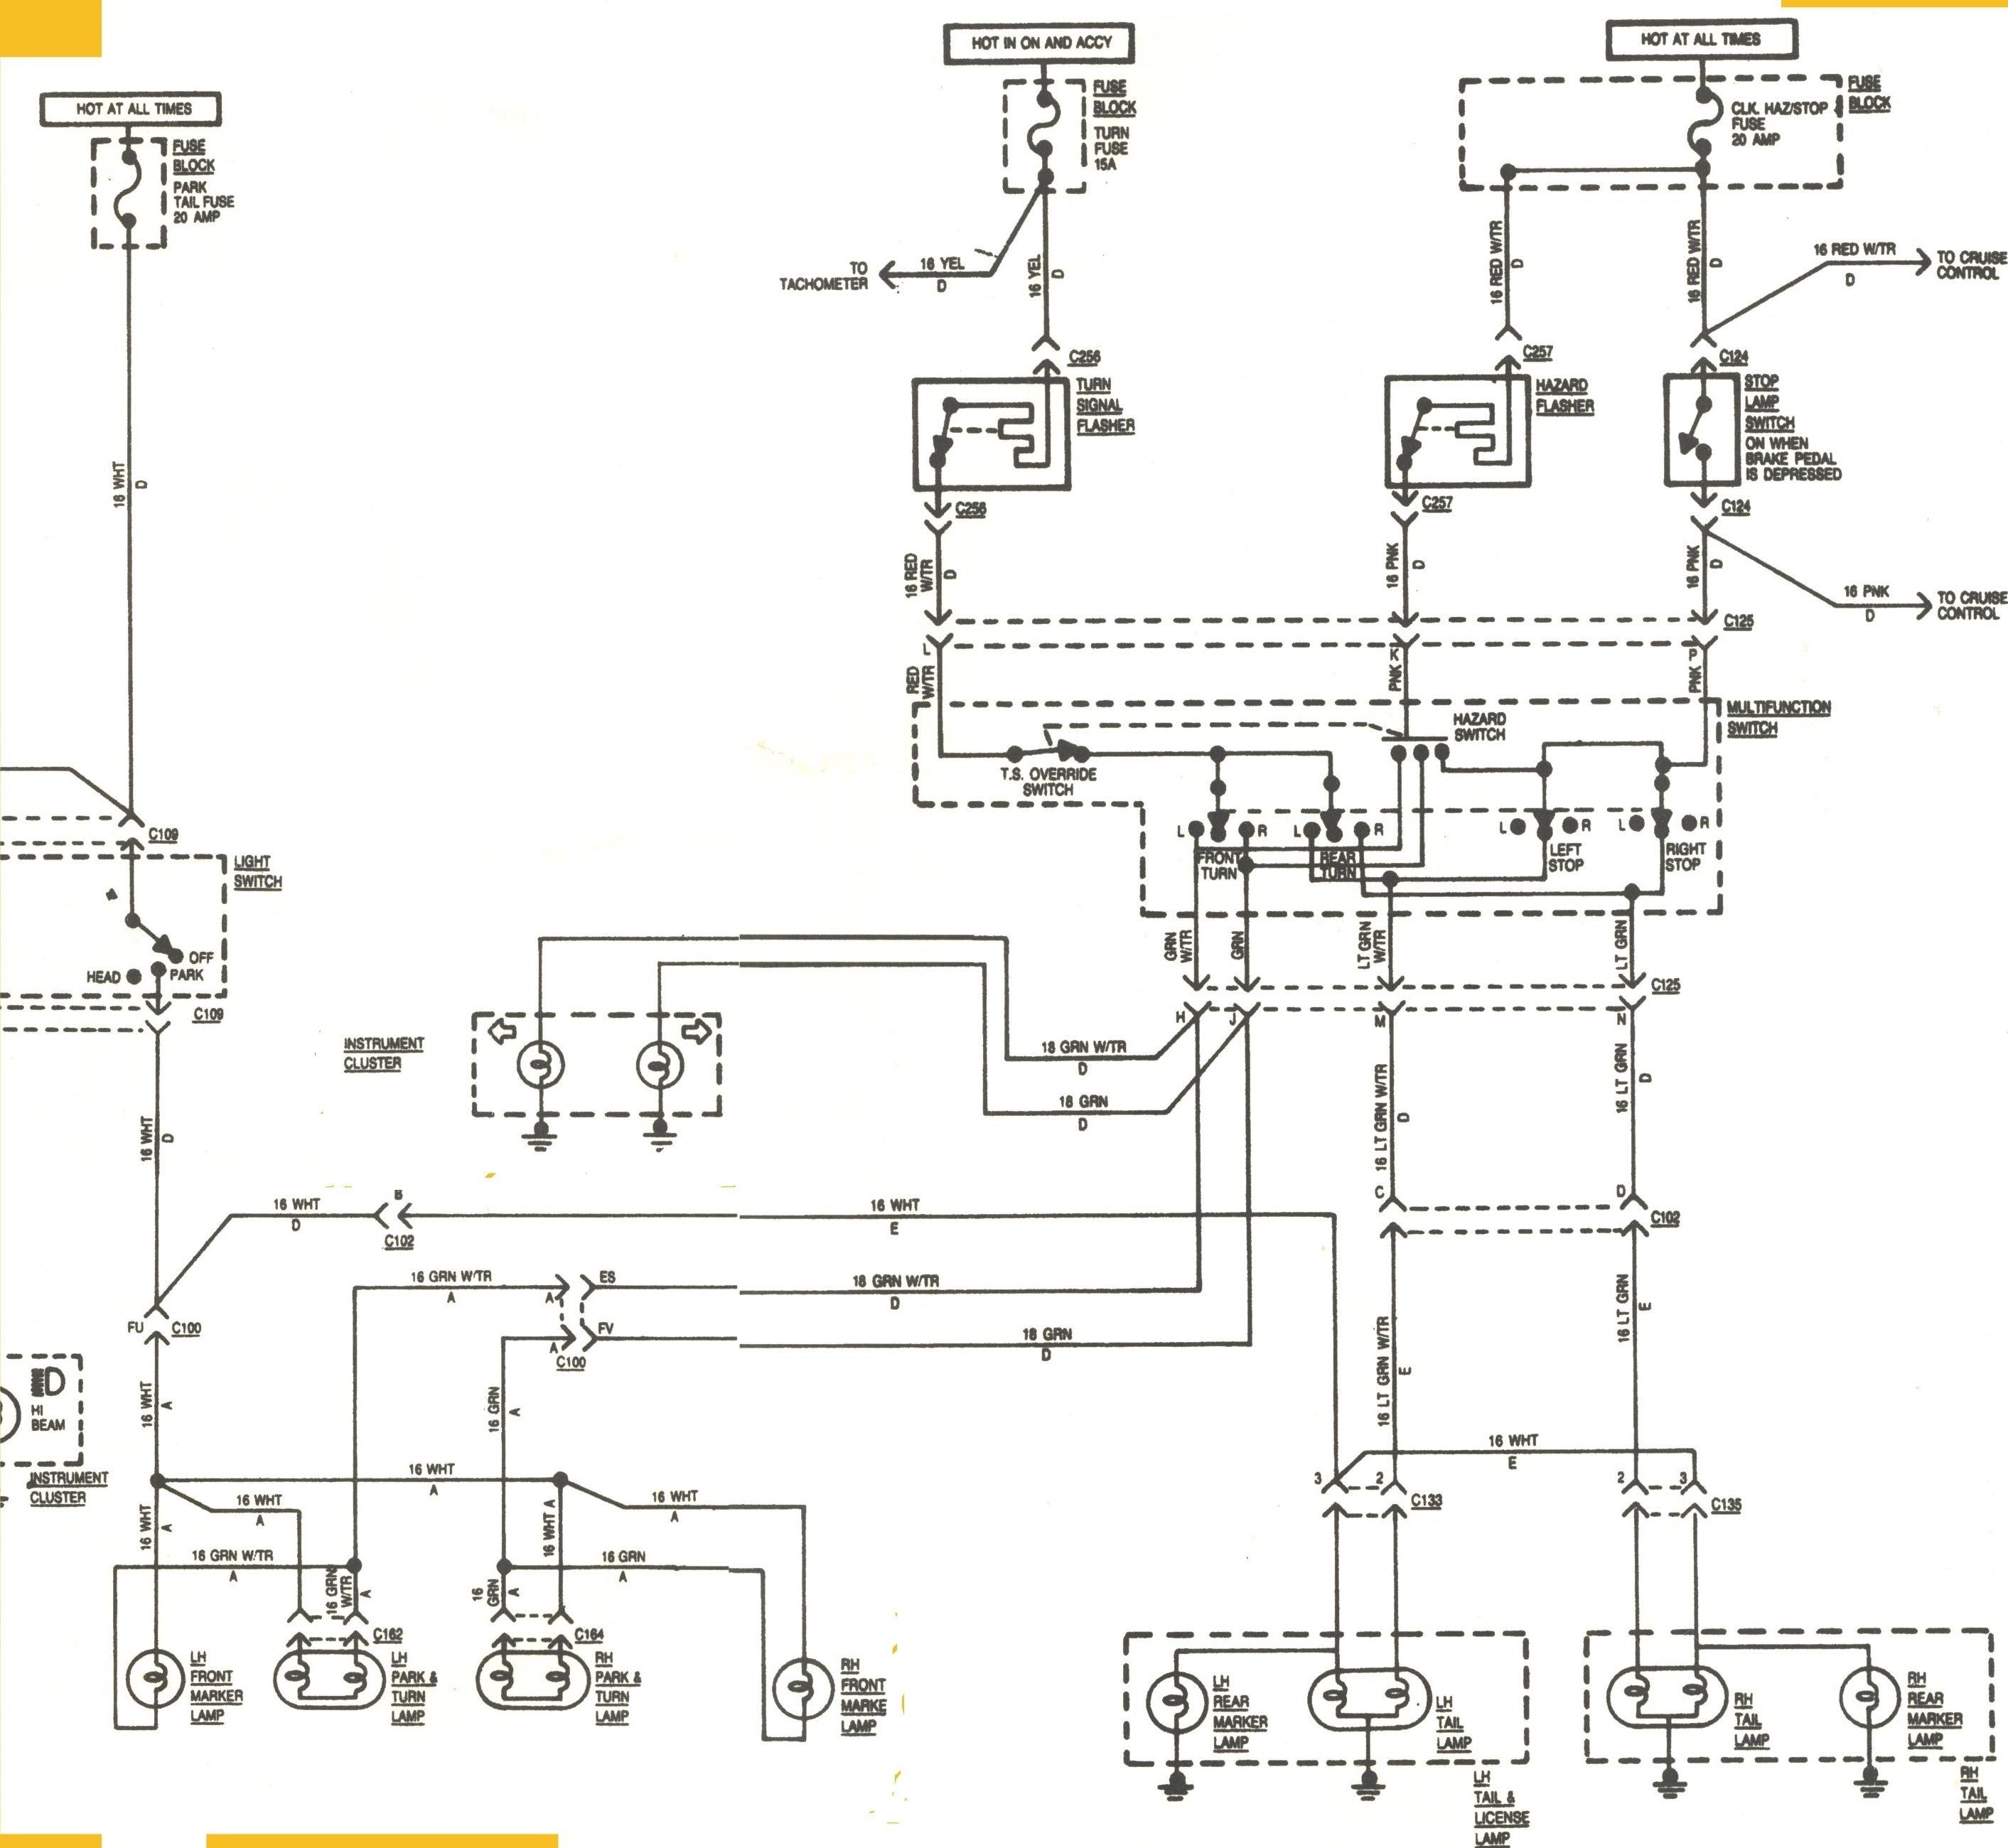 1999 Jeep Yj Wiring Diagram Wiring Diagram Go 99 Wrangler Heater Diagram